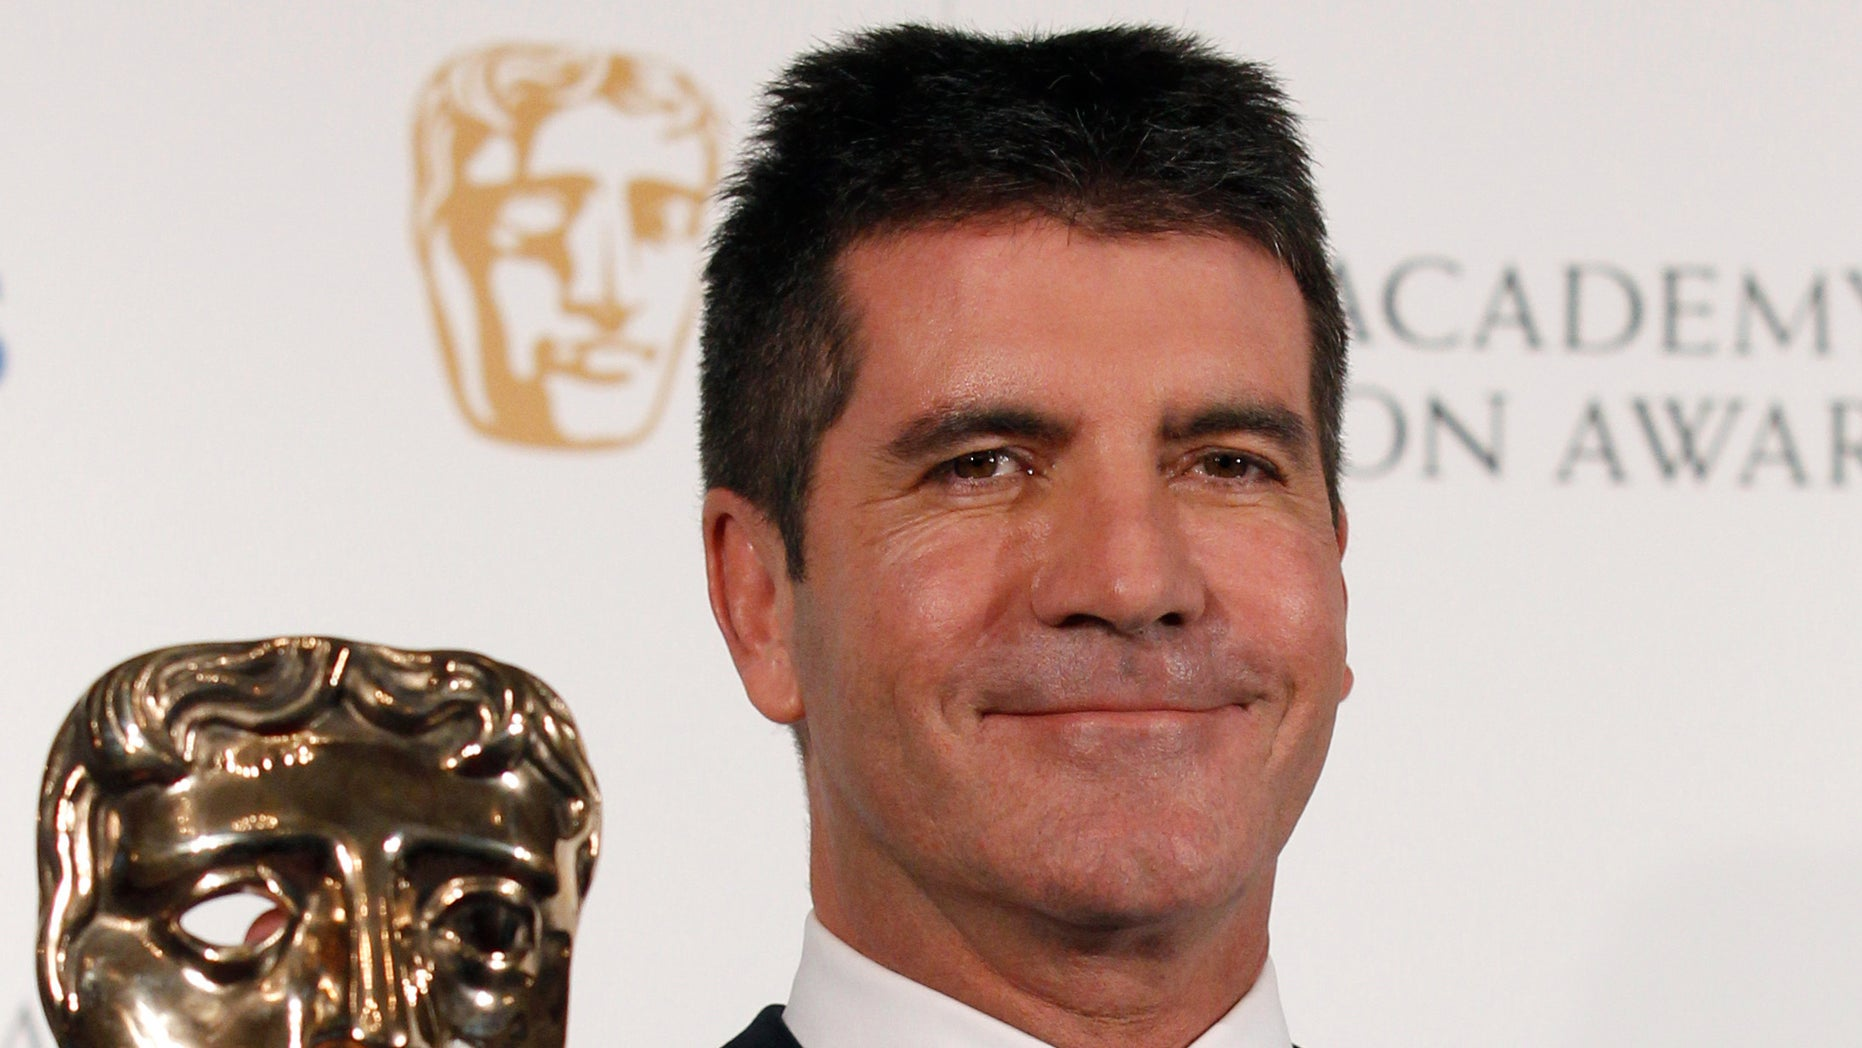 June 6: Television mogul Simon Cowell poses after receiving the British Academy Television Awards Special Award at the Palladium Theatre in London.